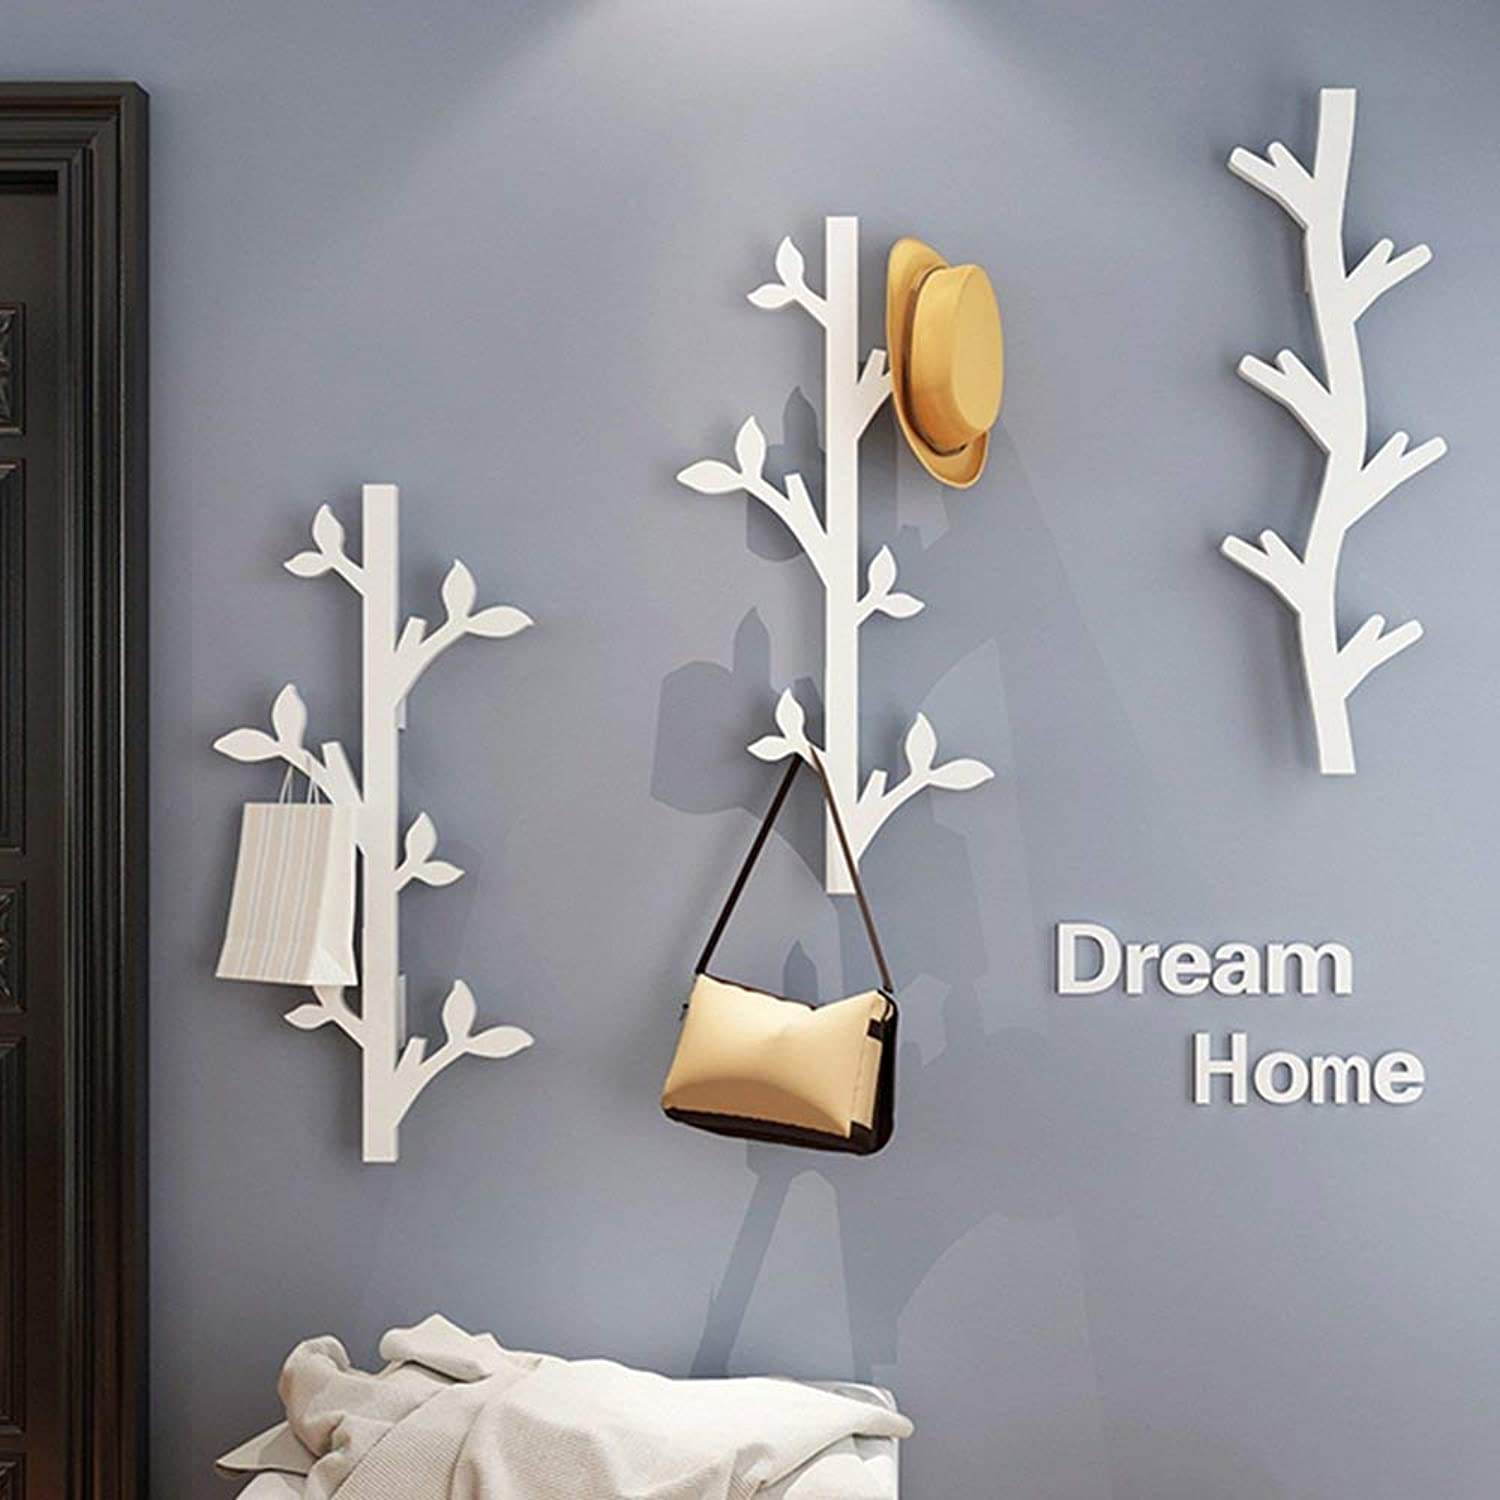 DYR Hanger Creative Hook Up Wall Hanging Wall 78cm Decoration Hanger Entrance Foyer Stable and Durable (color  7)